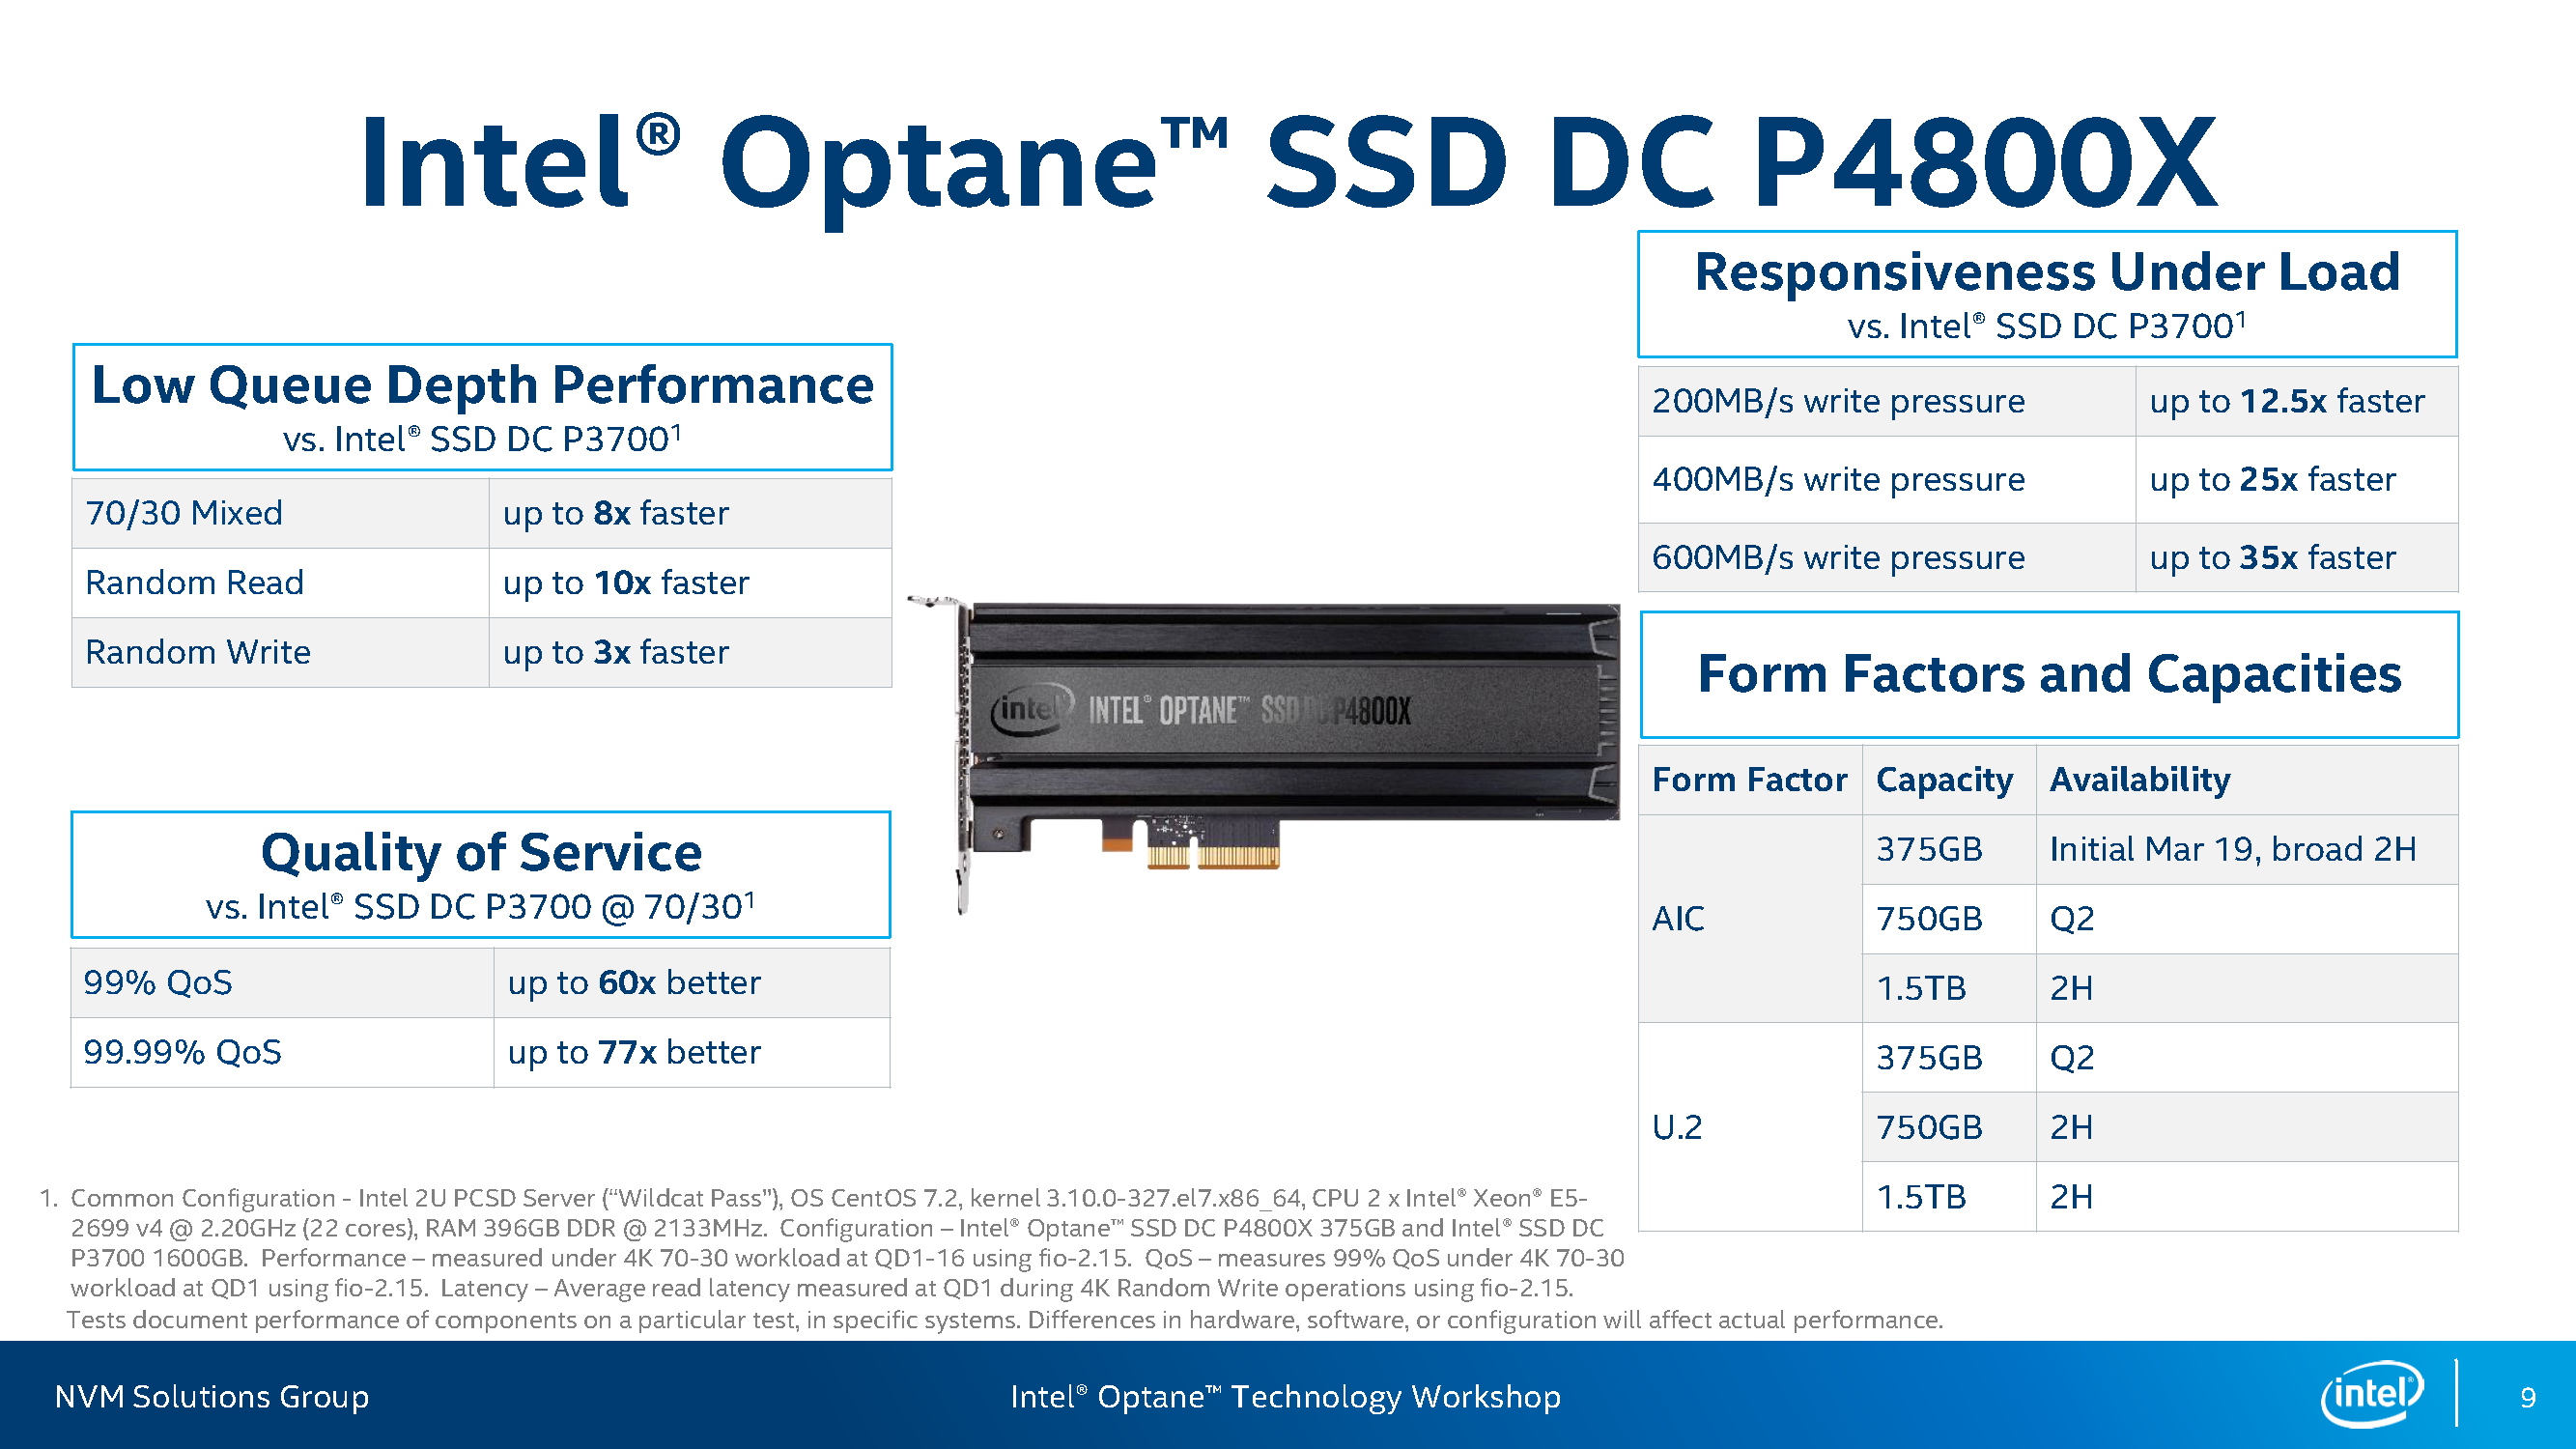 Intel Optane SSD DC P4800X Series unveiled for data centers